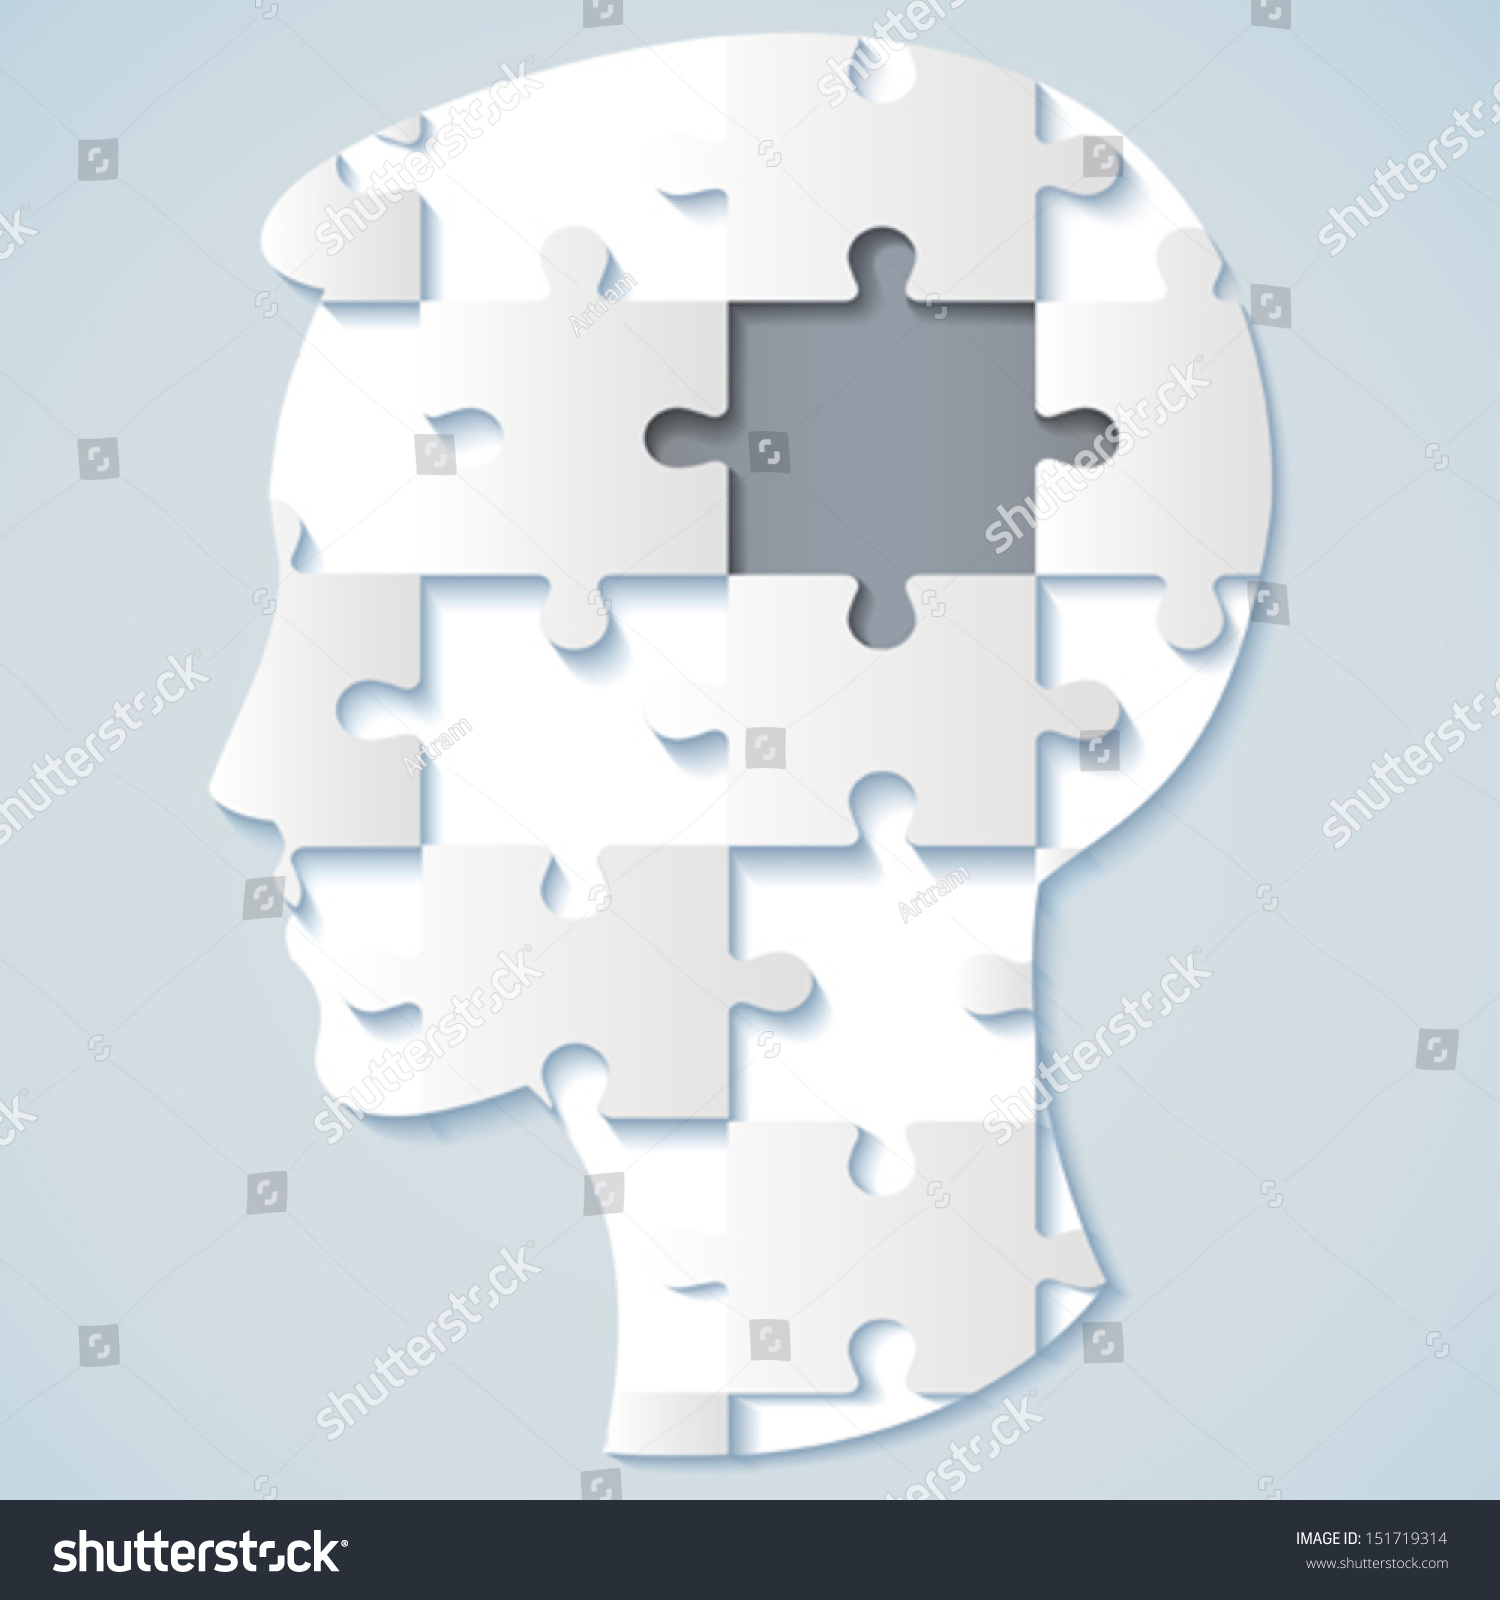 Jigsaw company lookup - Image Of A Human Face In The Form Of A Jigsaw Puzzle With A Gray Mid